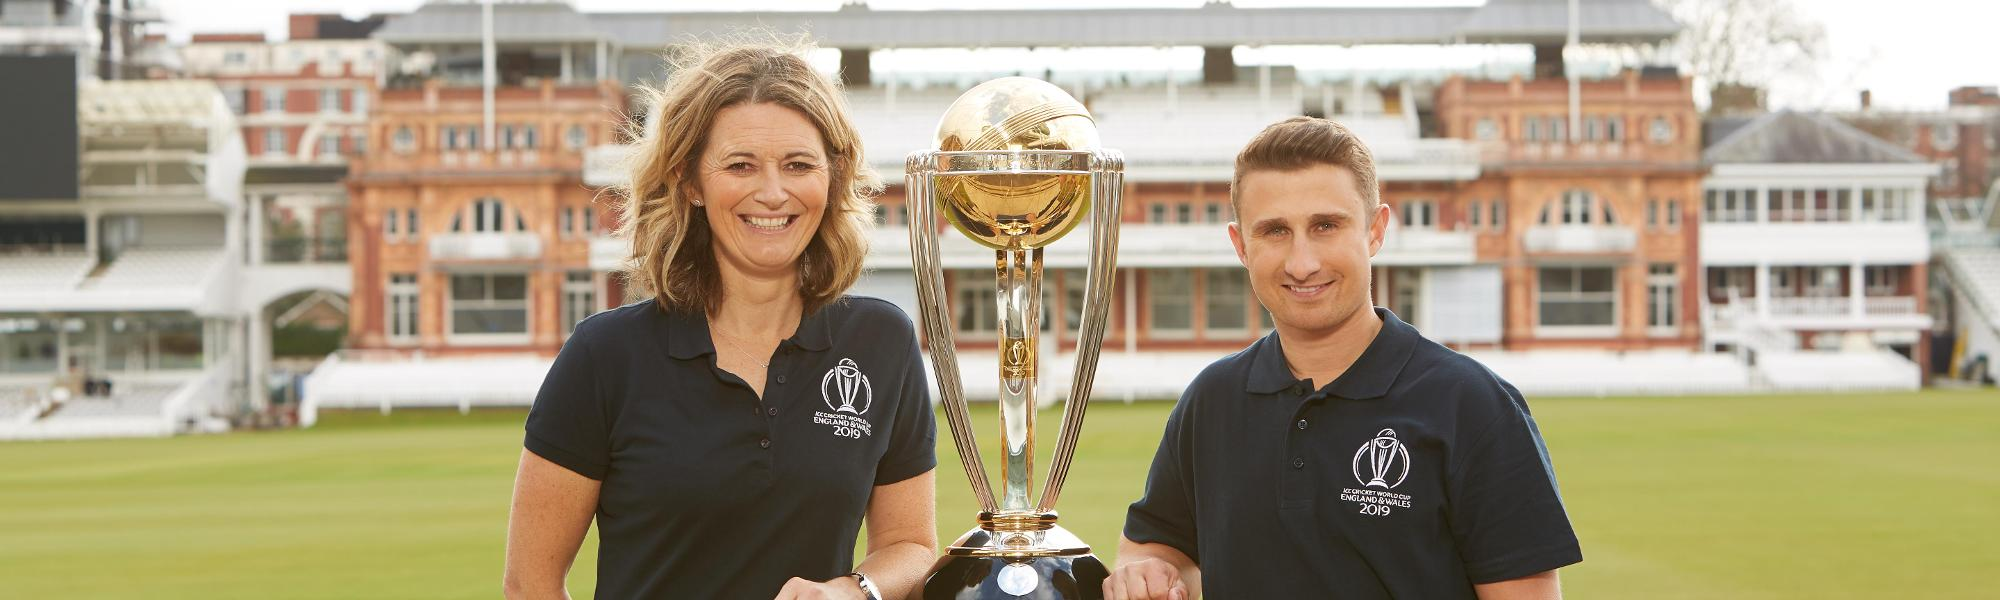 World Cup Cricketeers